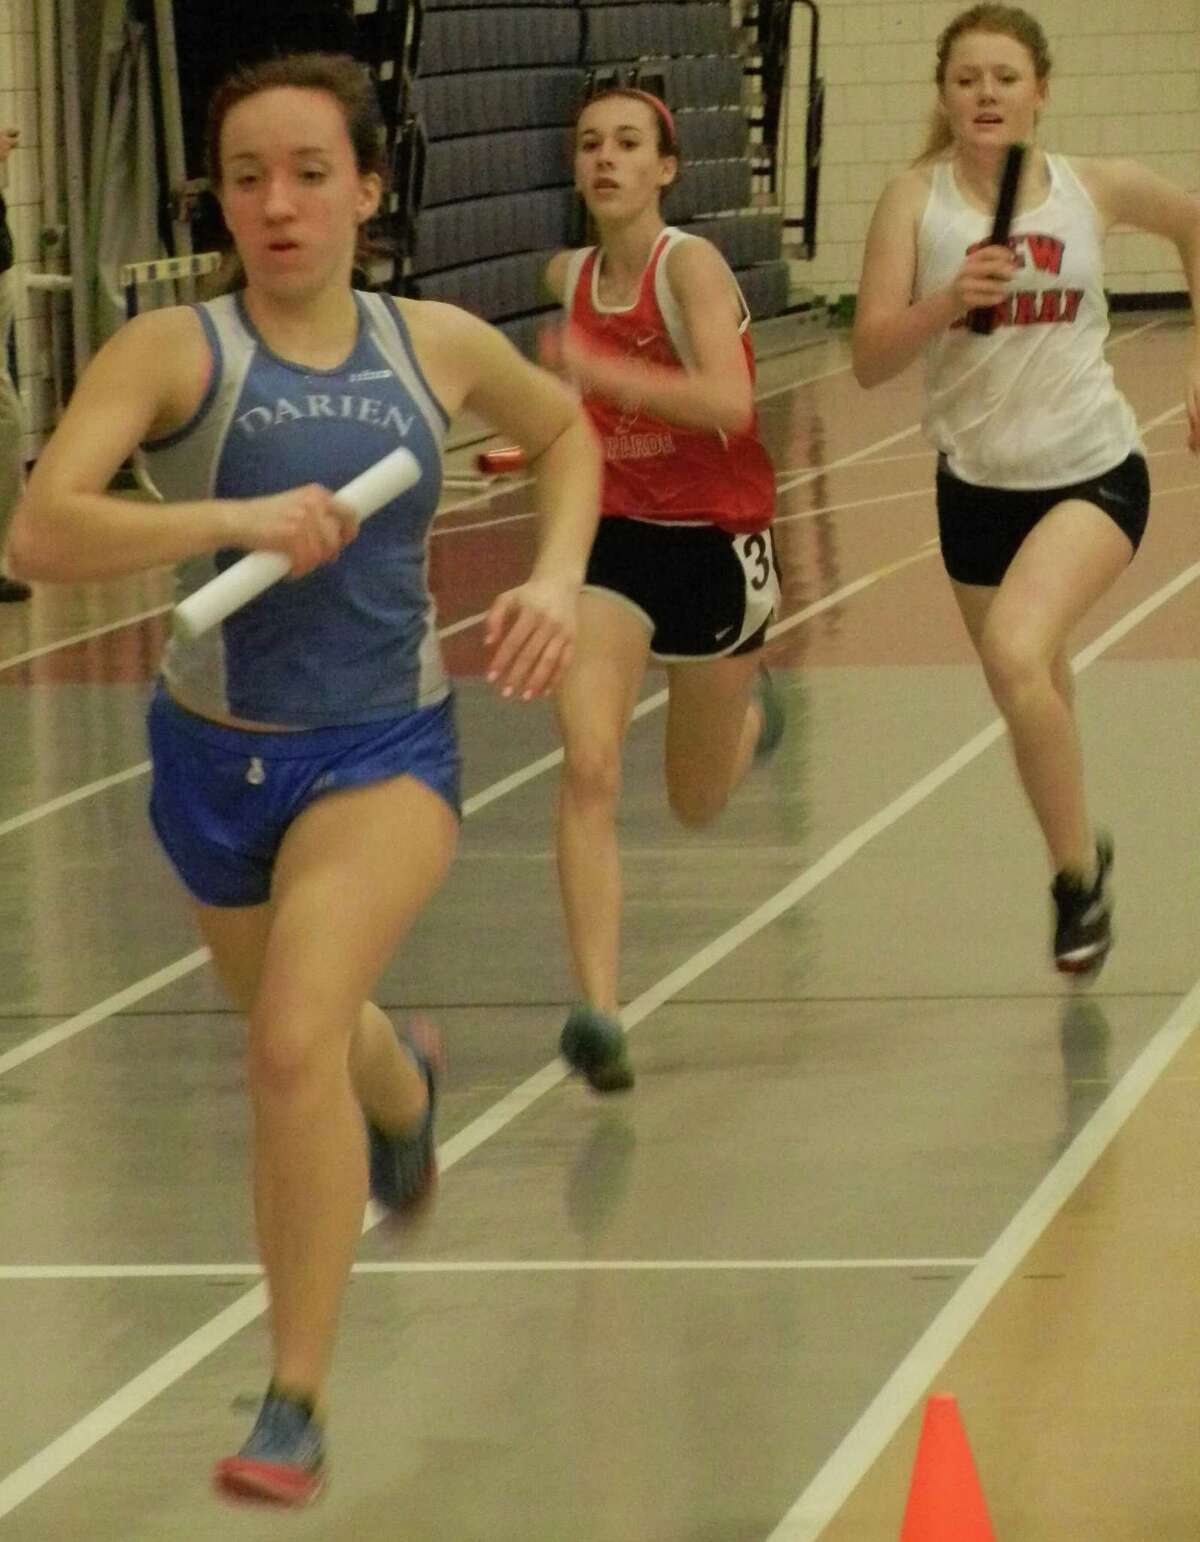 Fairfield Warde freshman Sarah Radziewicz, center, edging New Canaan's anchor-leg runner on Friday, Jan. 24 as the Mustangs won the 4-by-750-meter relay at the FCIAC East indoor track and field championship meet in Wilton. The Darien runner in front was beginning her last lap. Warde won this relay by 0.07 of a second.